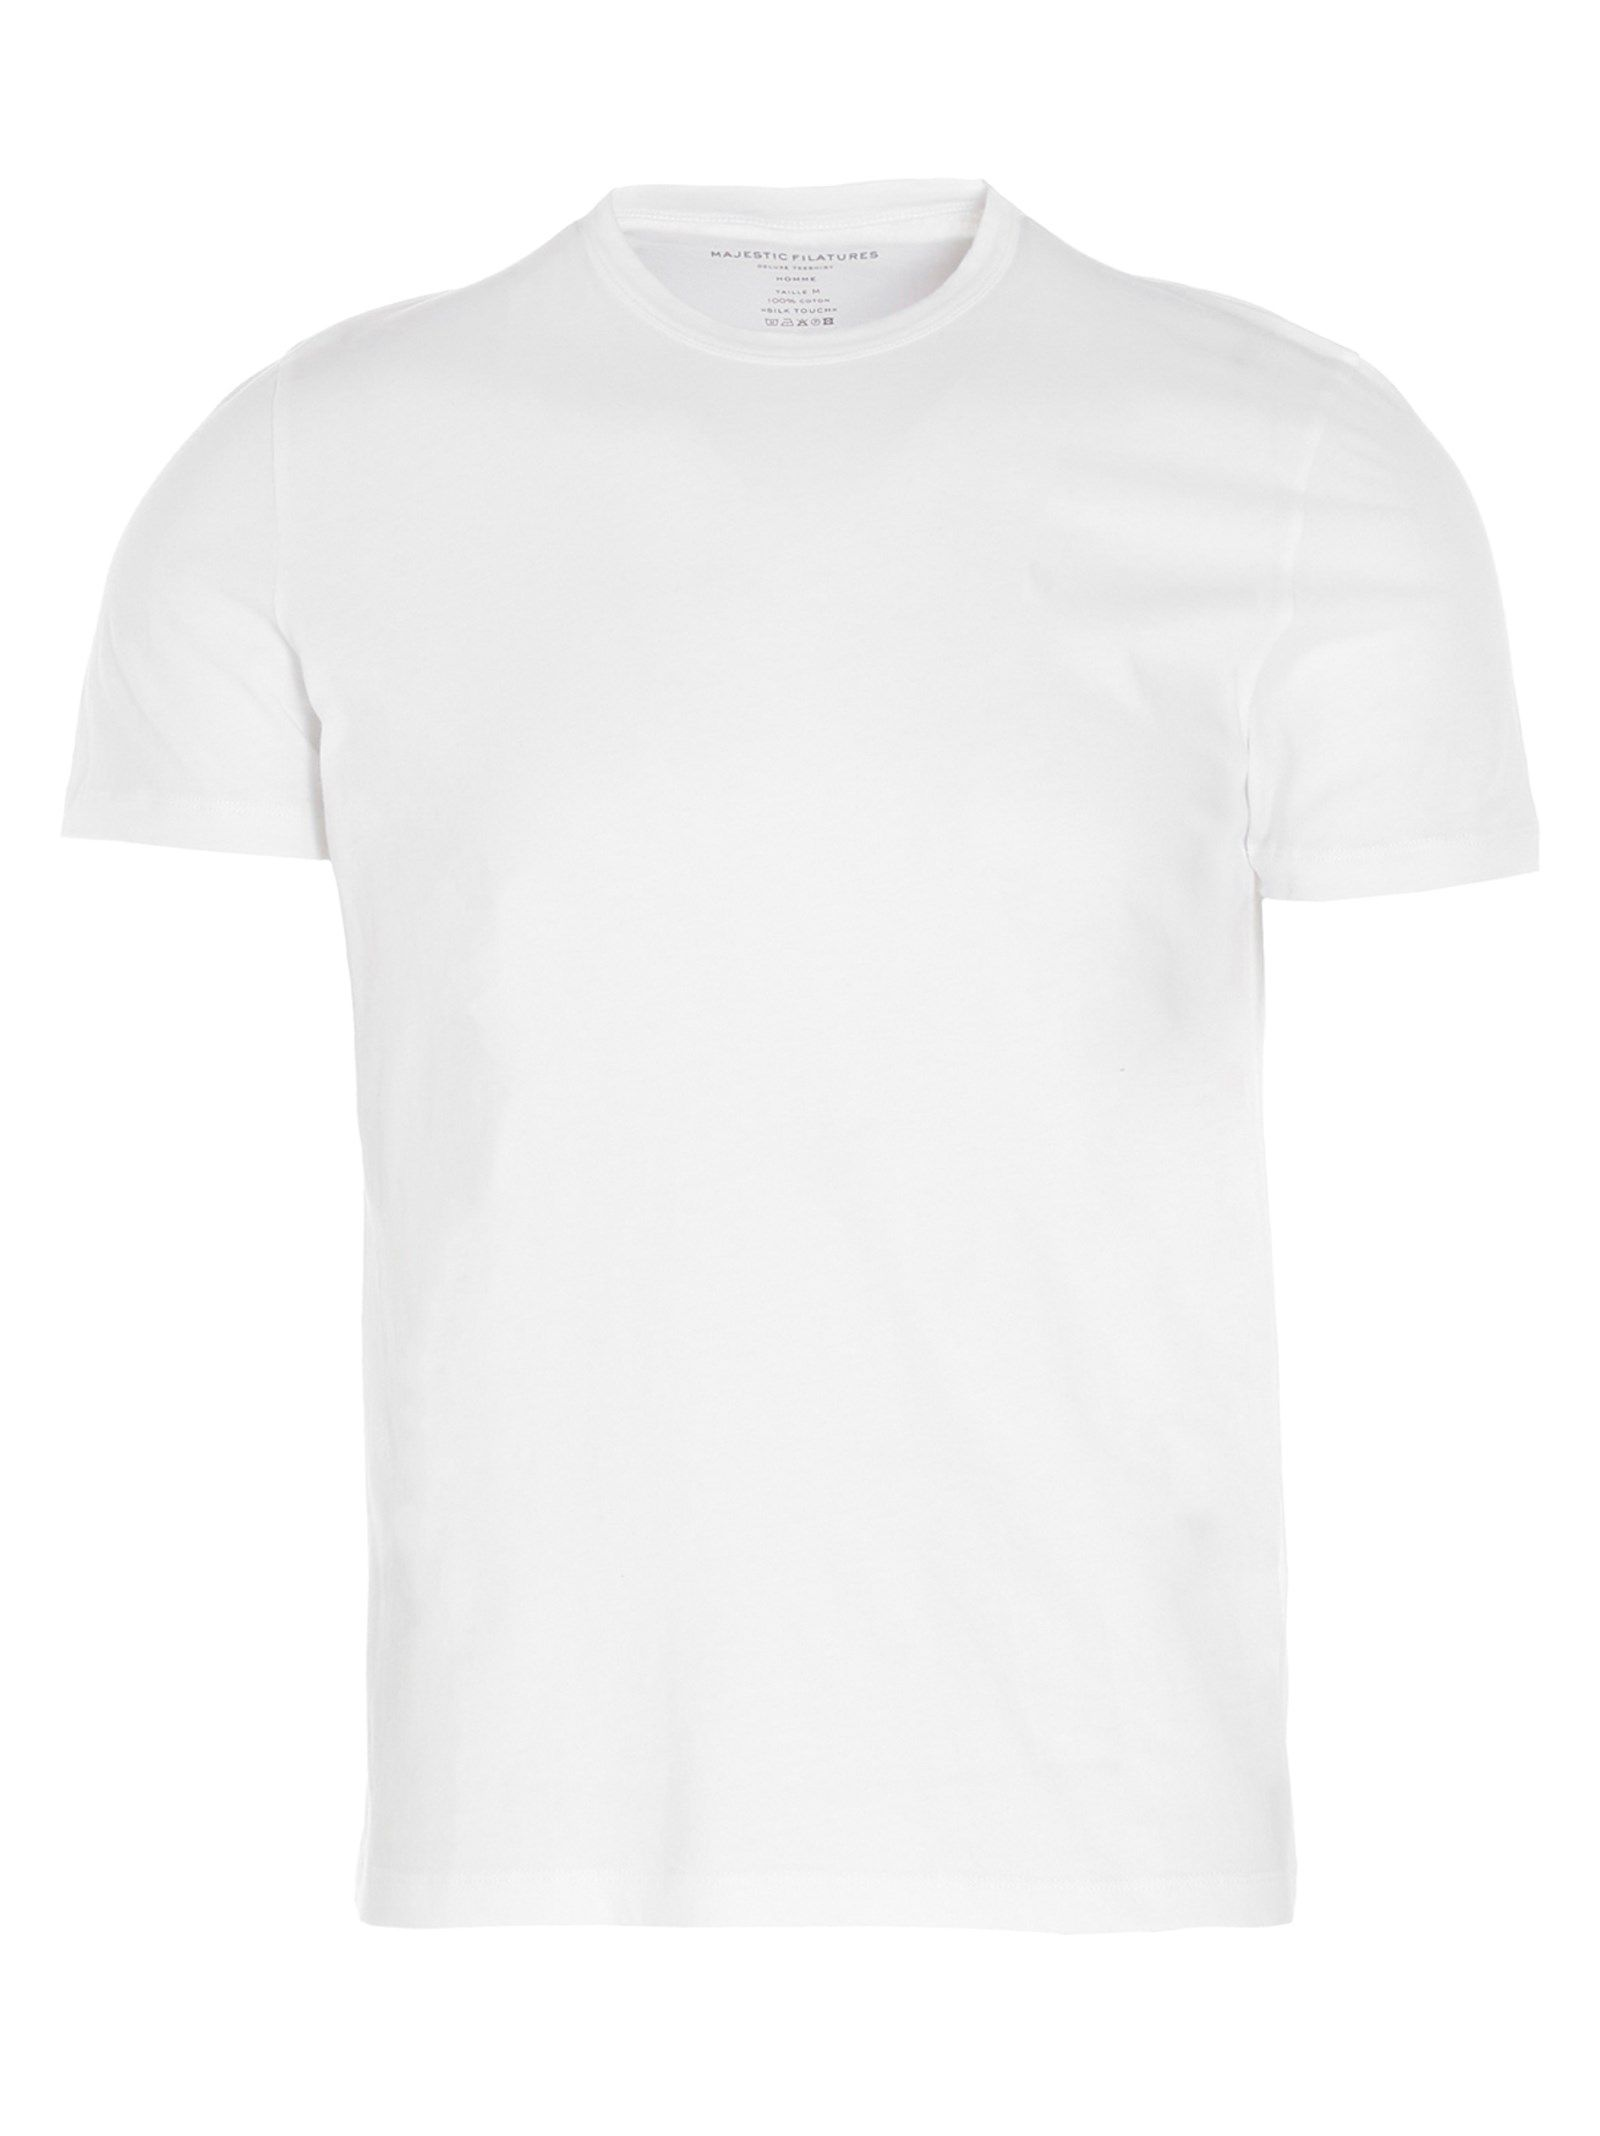 Majestic Cottons MAJESTIC FILATURES MEN'S HTS084M537001 WHITE OTHER MATERIALS T-SHIRT